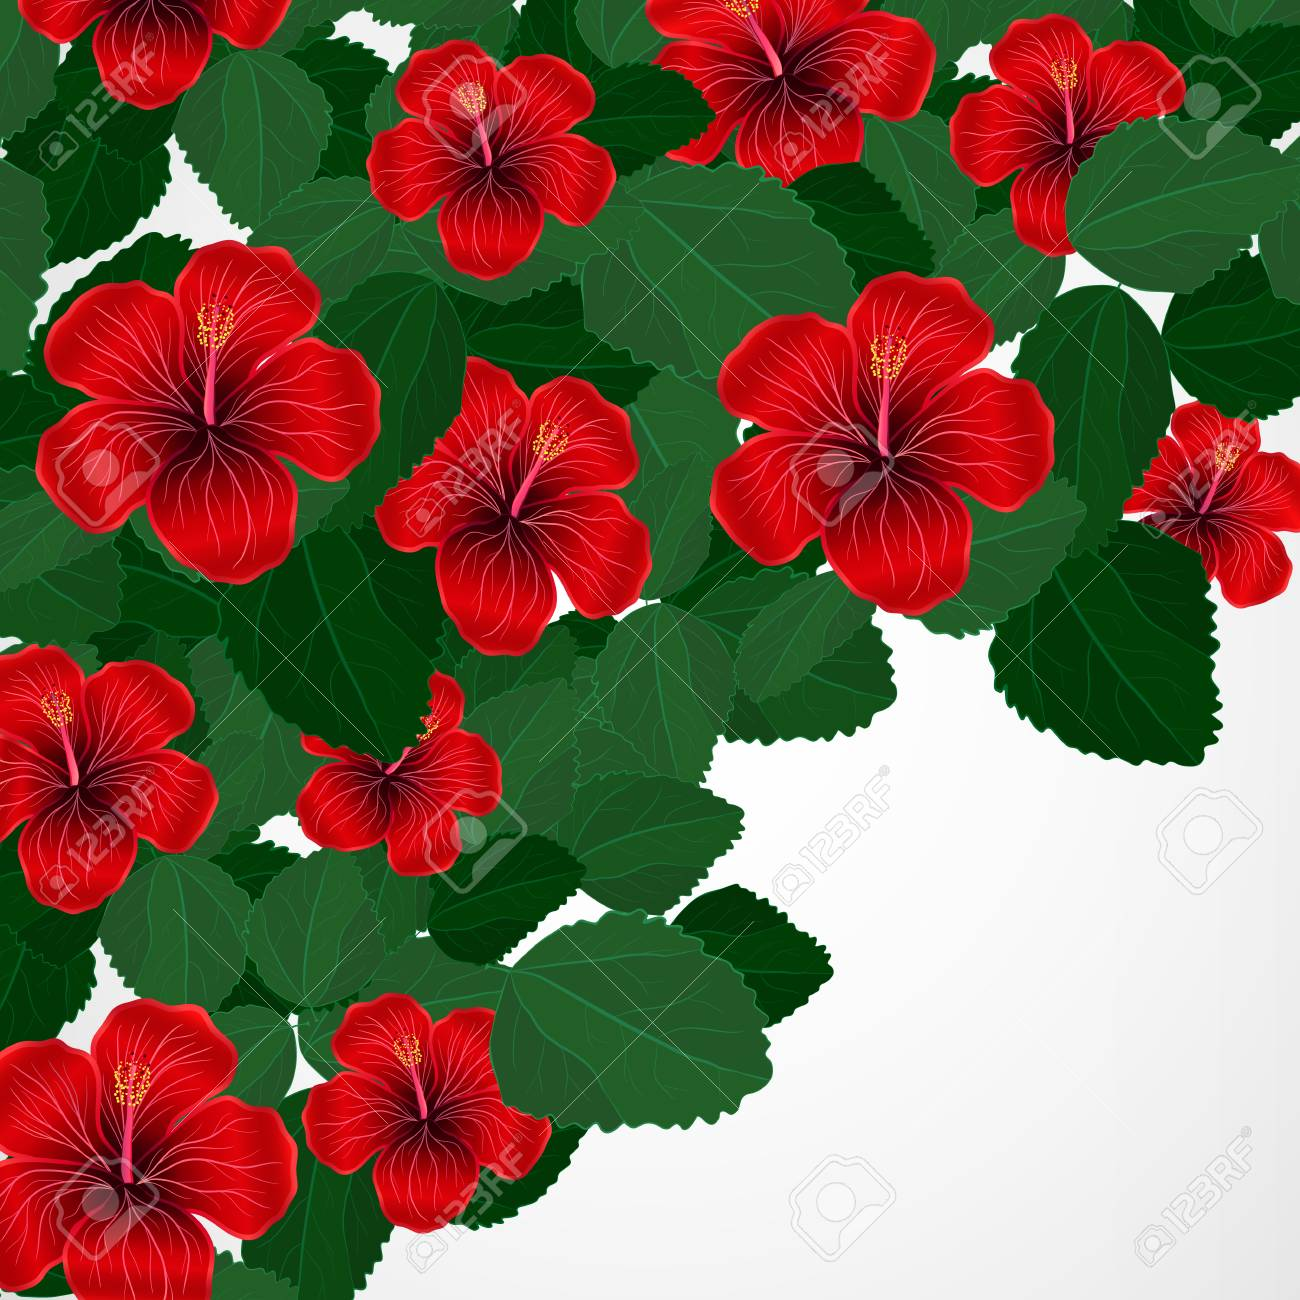 Floral Design Background Hibiscus Flowers Royalty Free Cliparts